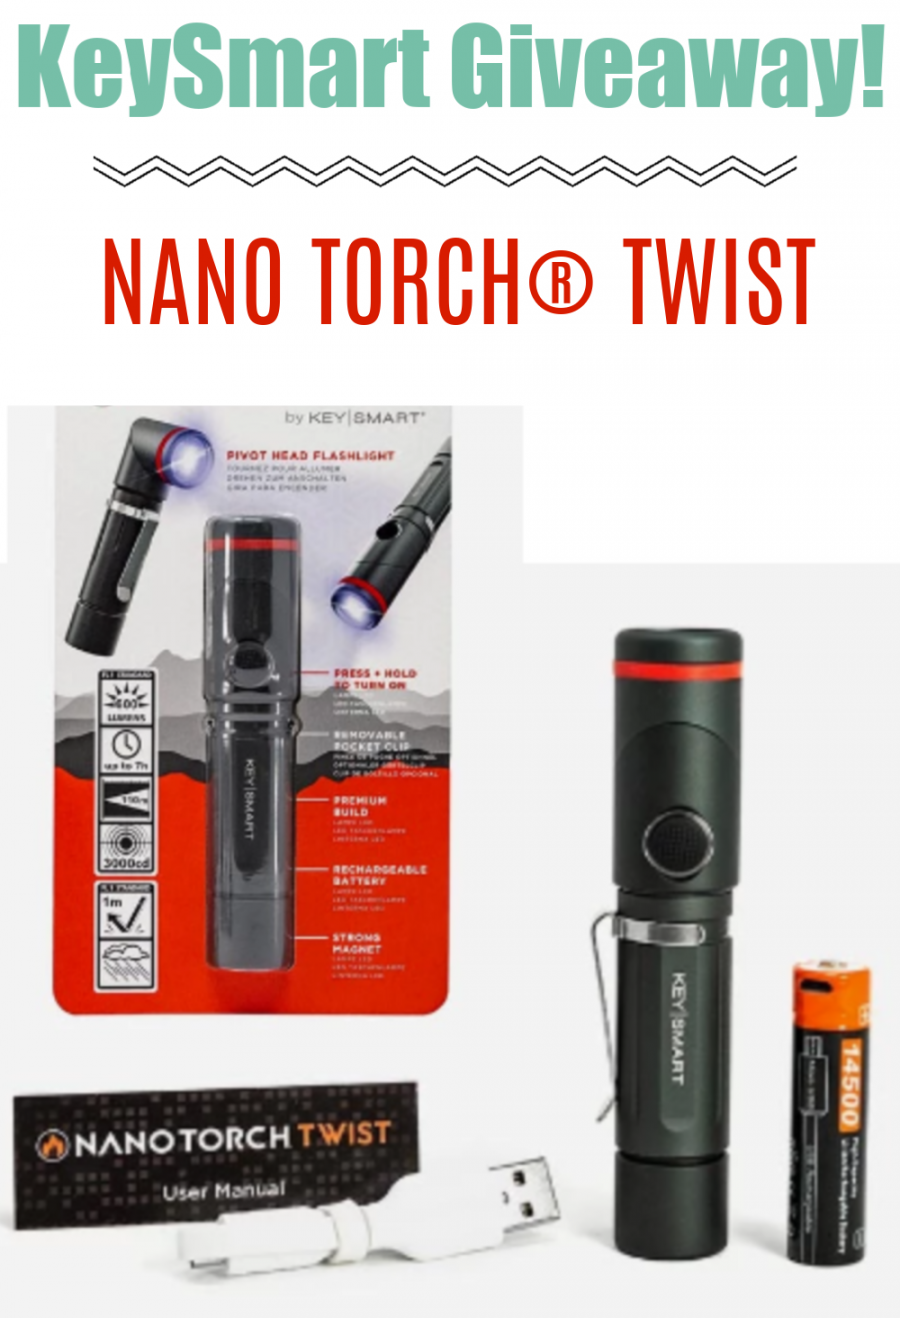 NANOTORCH TWIST Giveaway